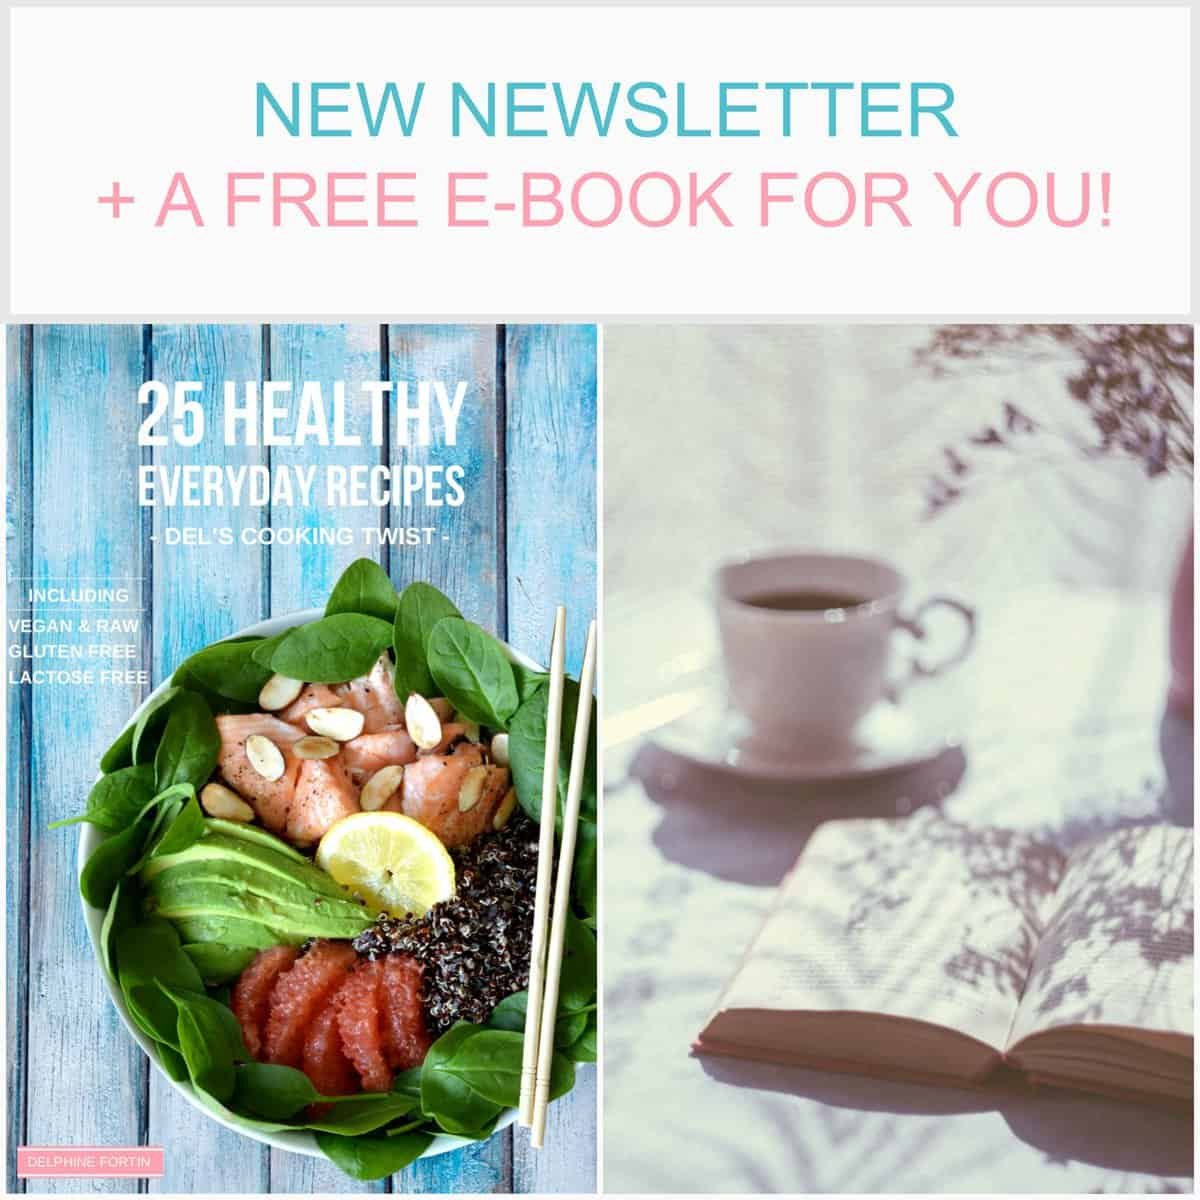 new-newsletter-and-a-free-e-book